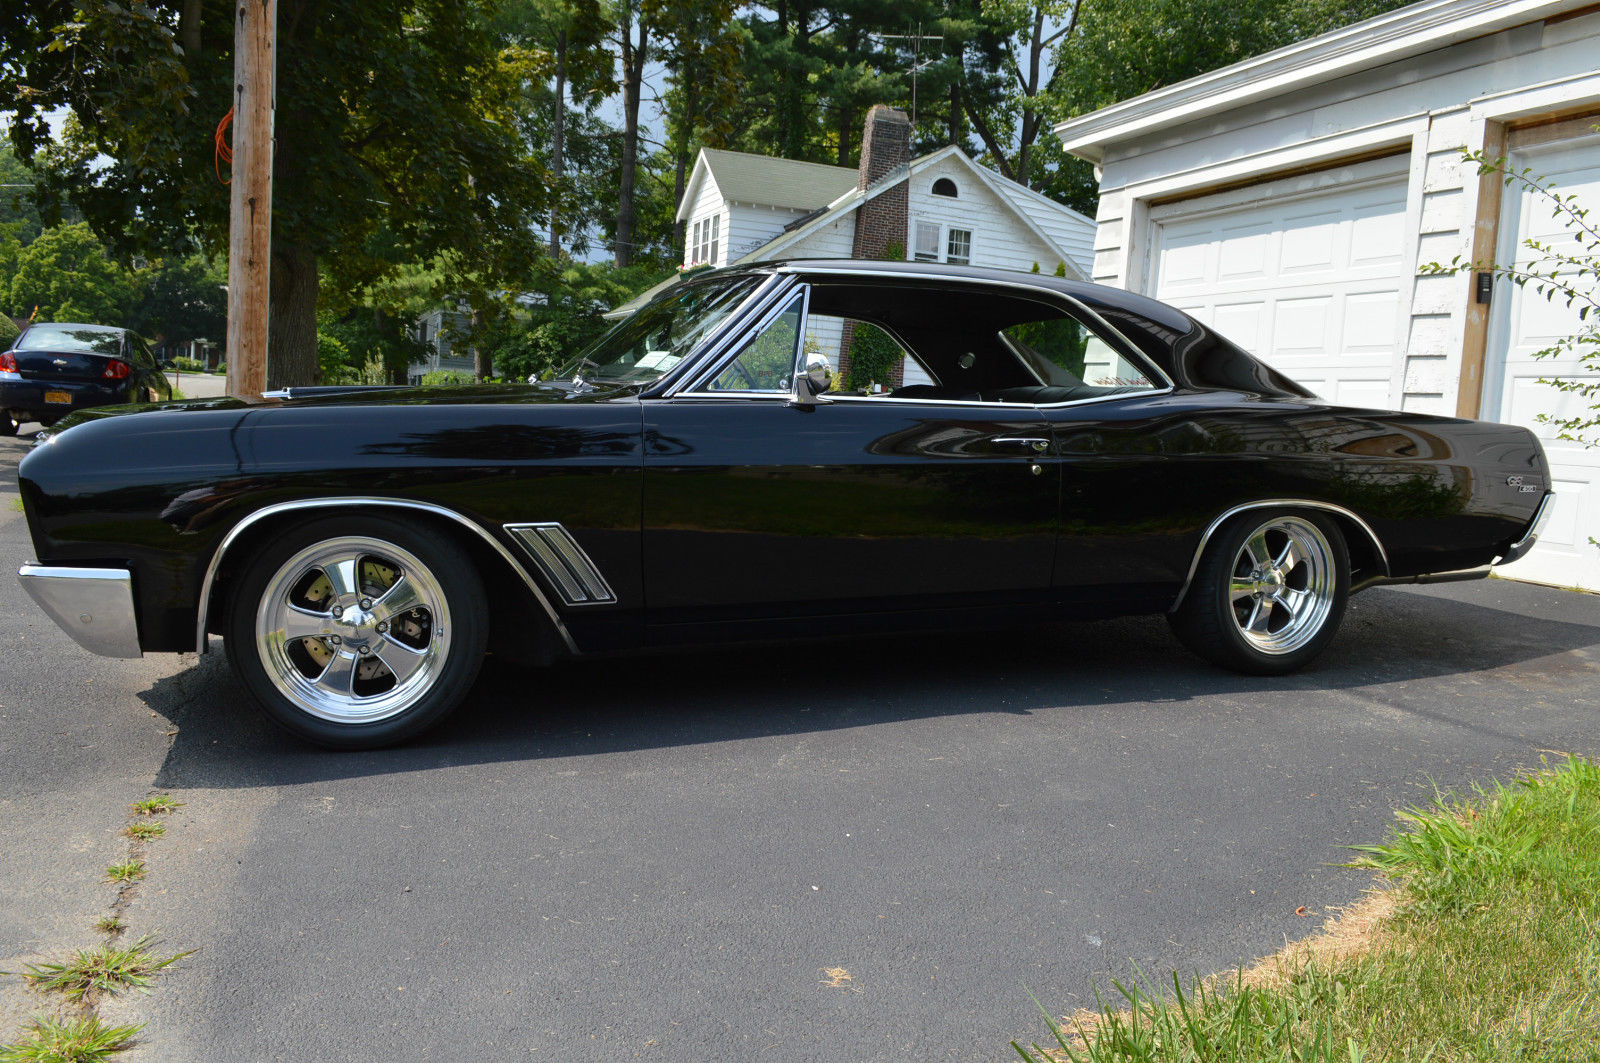 Air Conditioning Not Working In Car >> BangShift.com 1967 Buick Skylark GS400